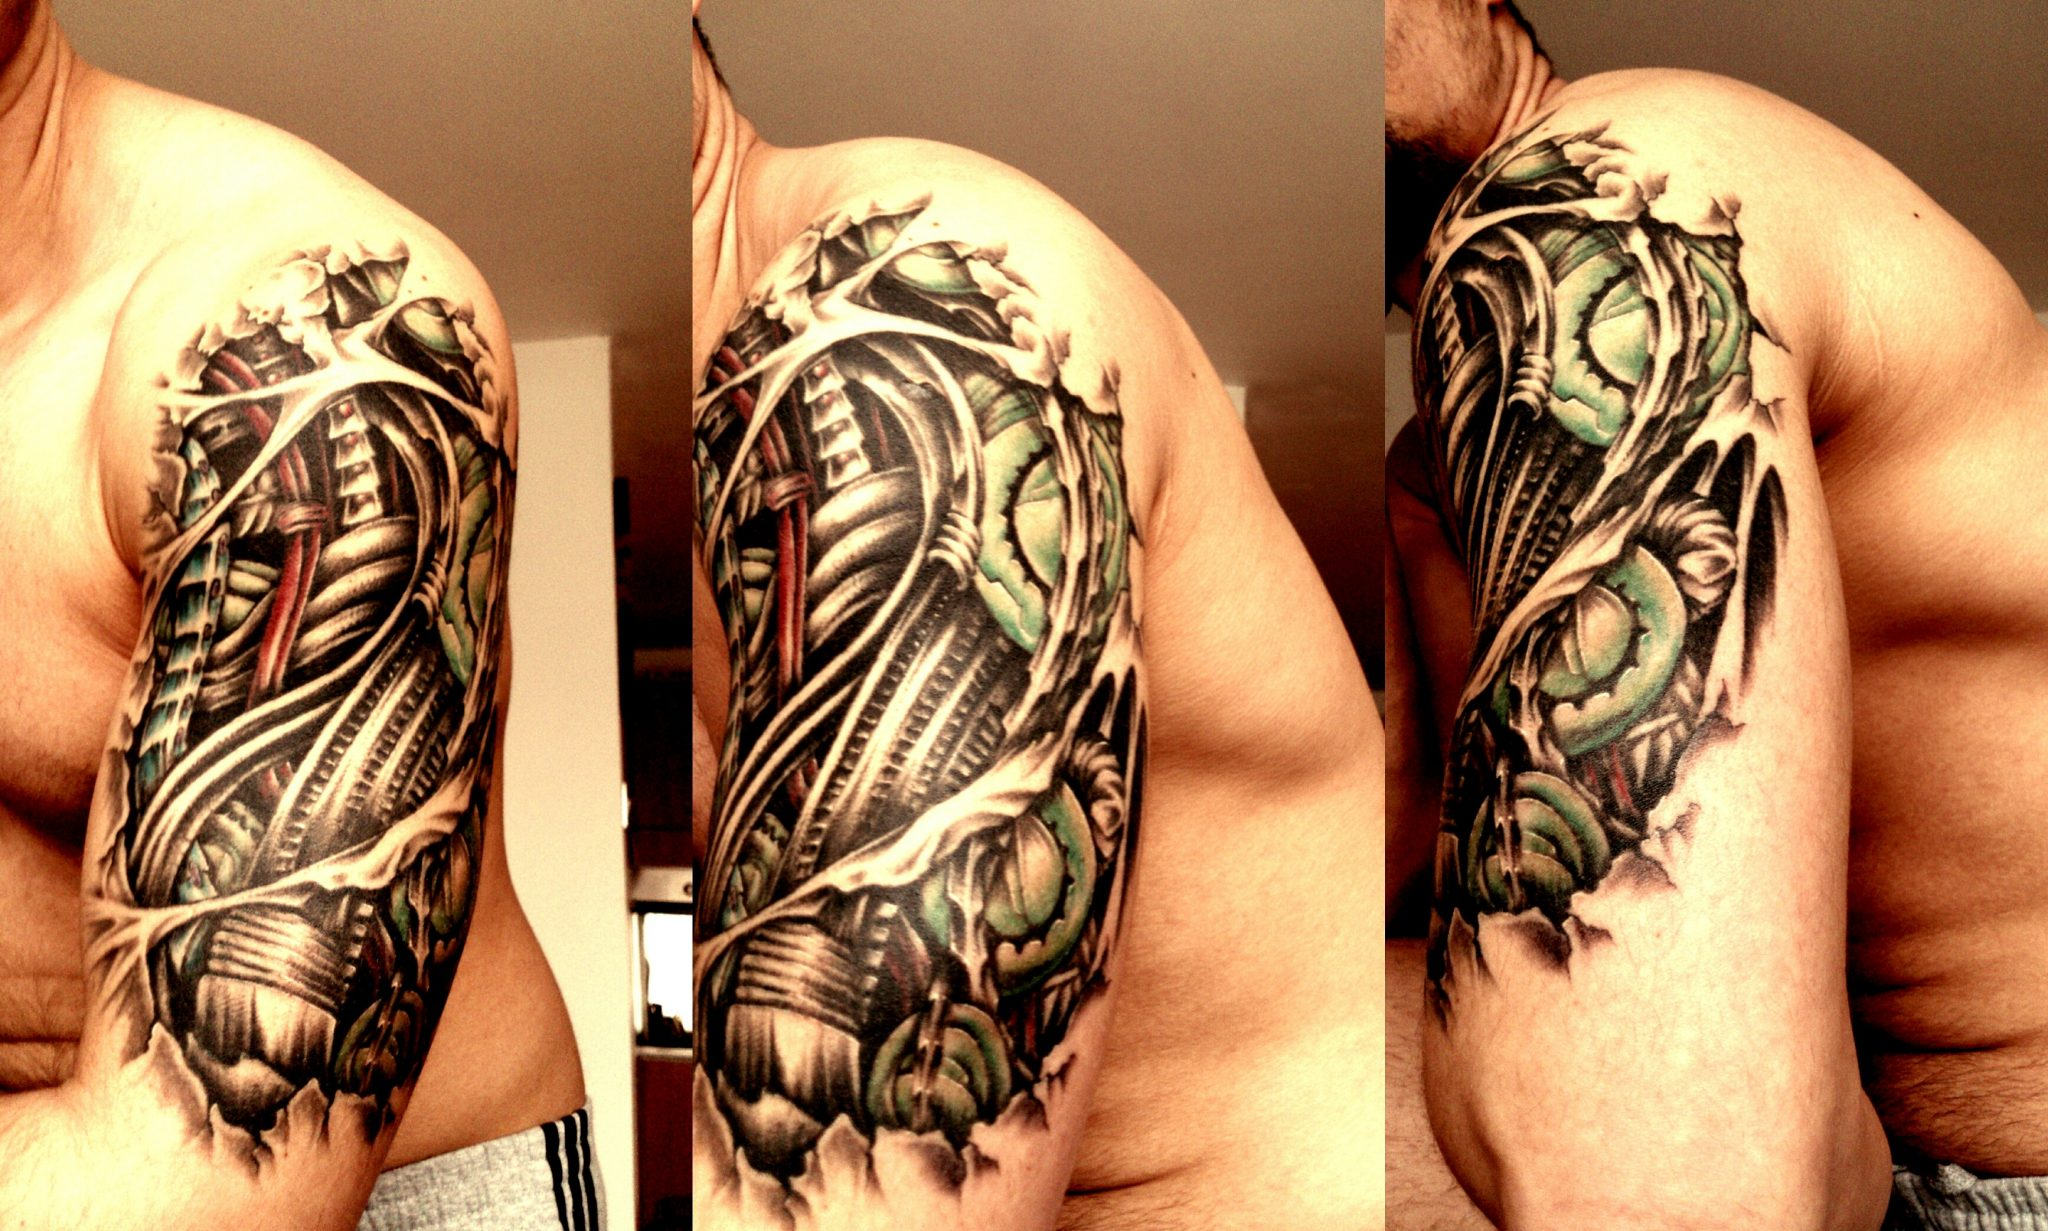 Amazing Biomechanical Tattoos for Men on Arm